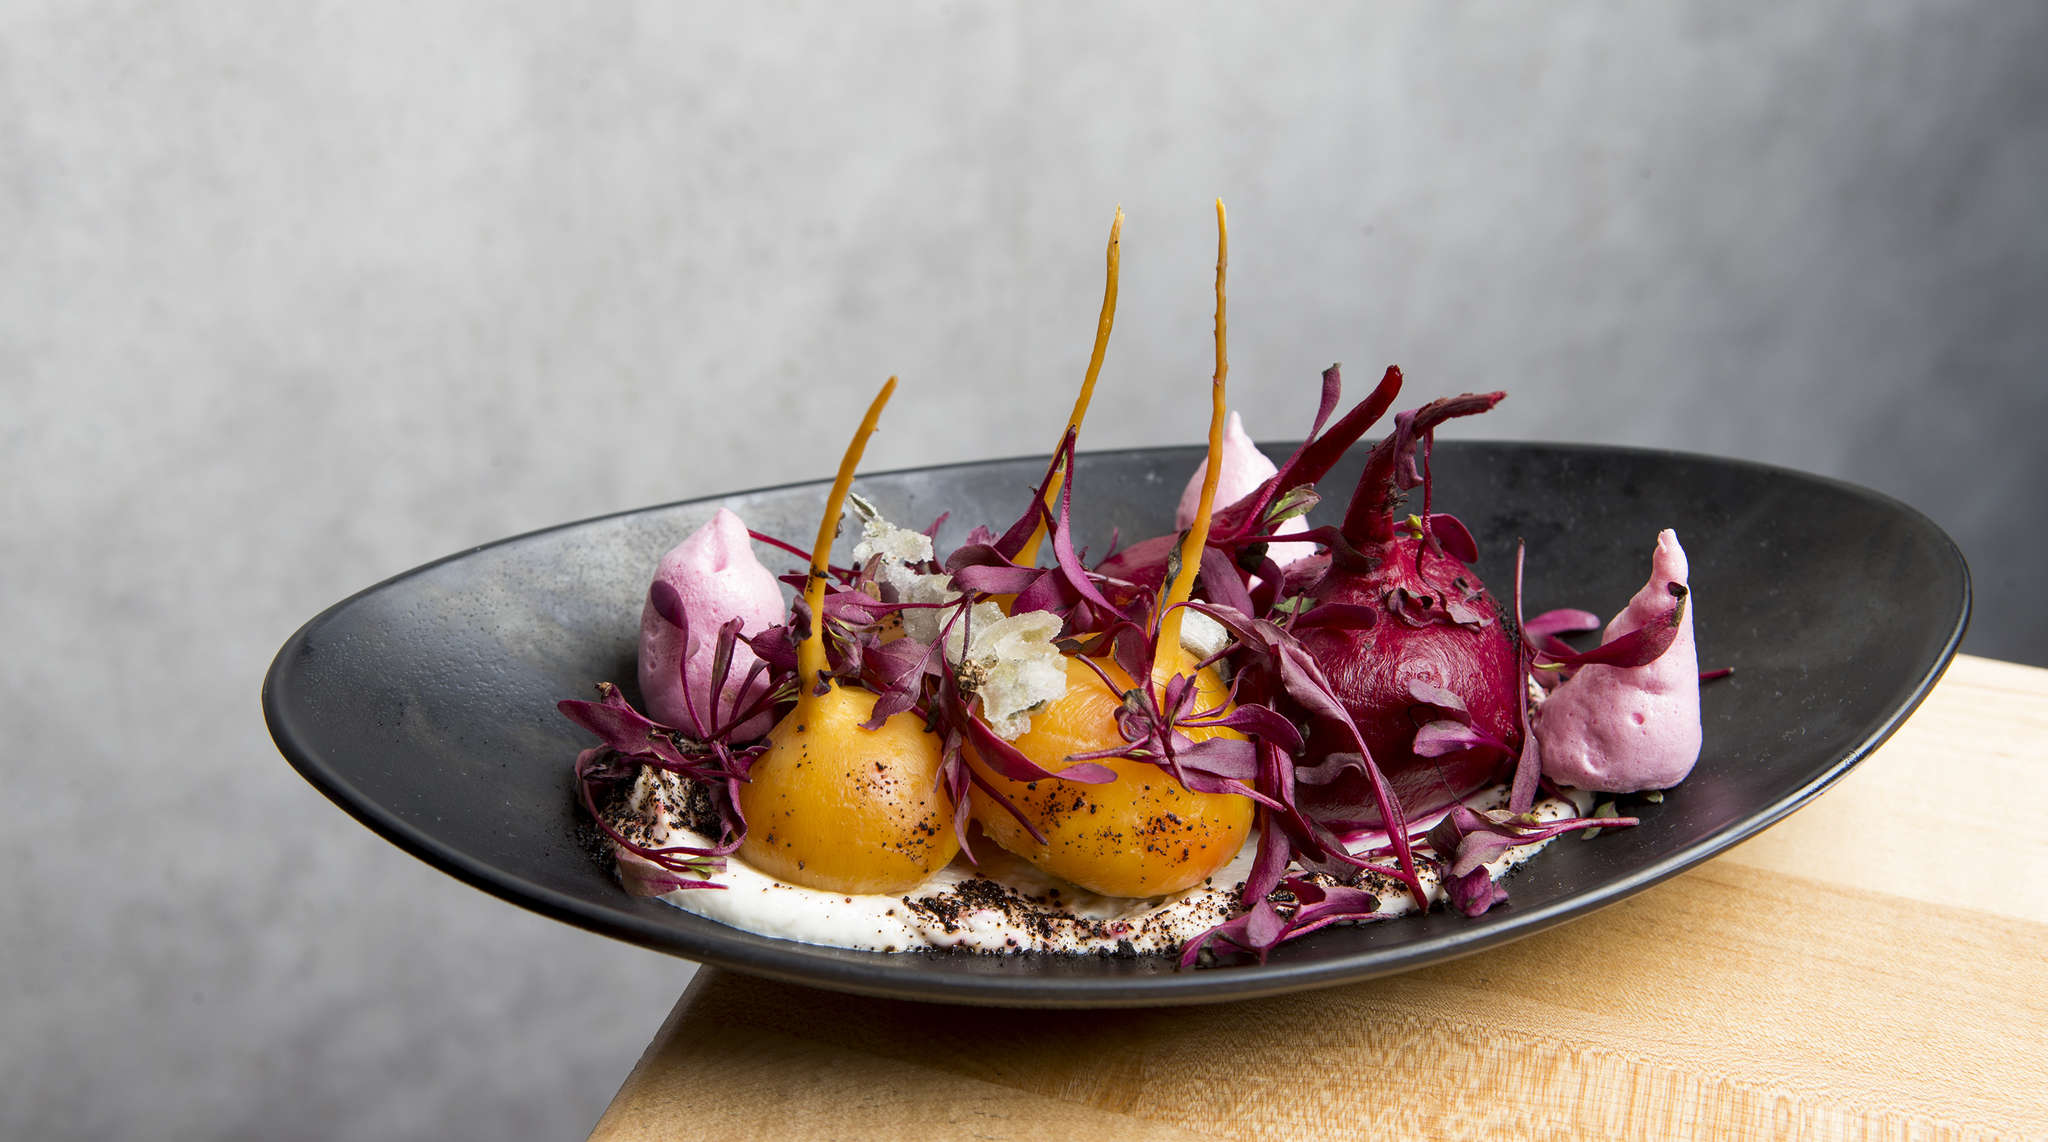 Whole baby beets sit on a smear of goat cheese with meringue crisps at Bistro 7.